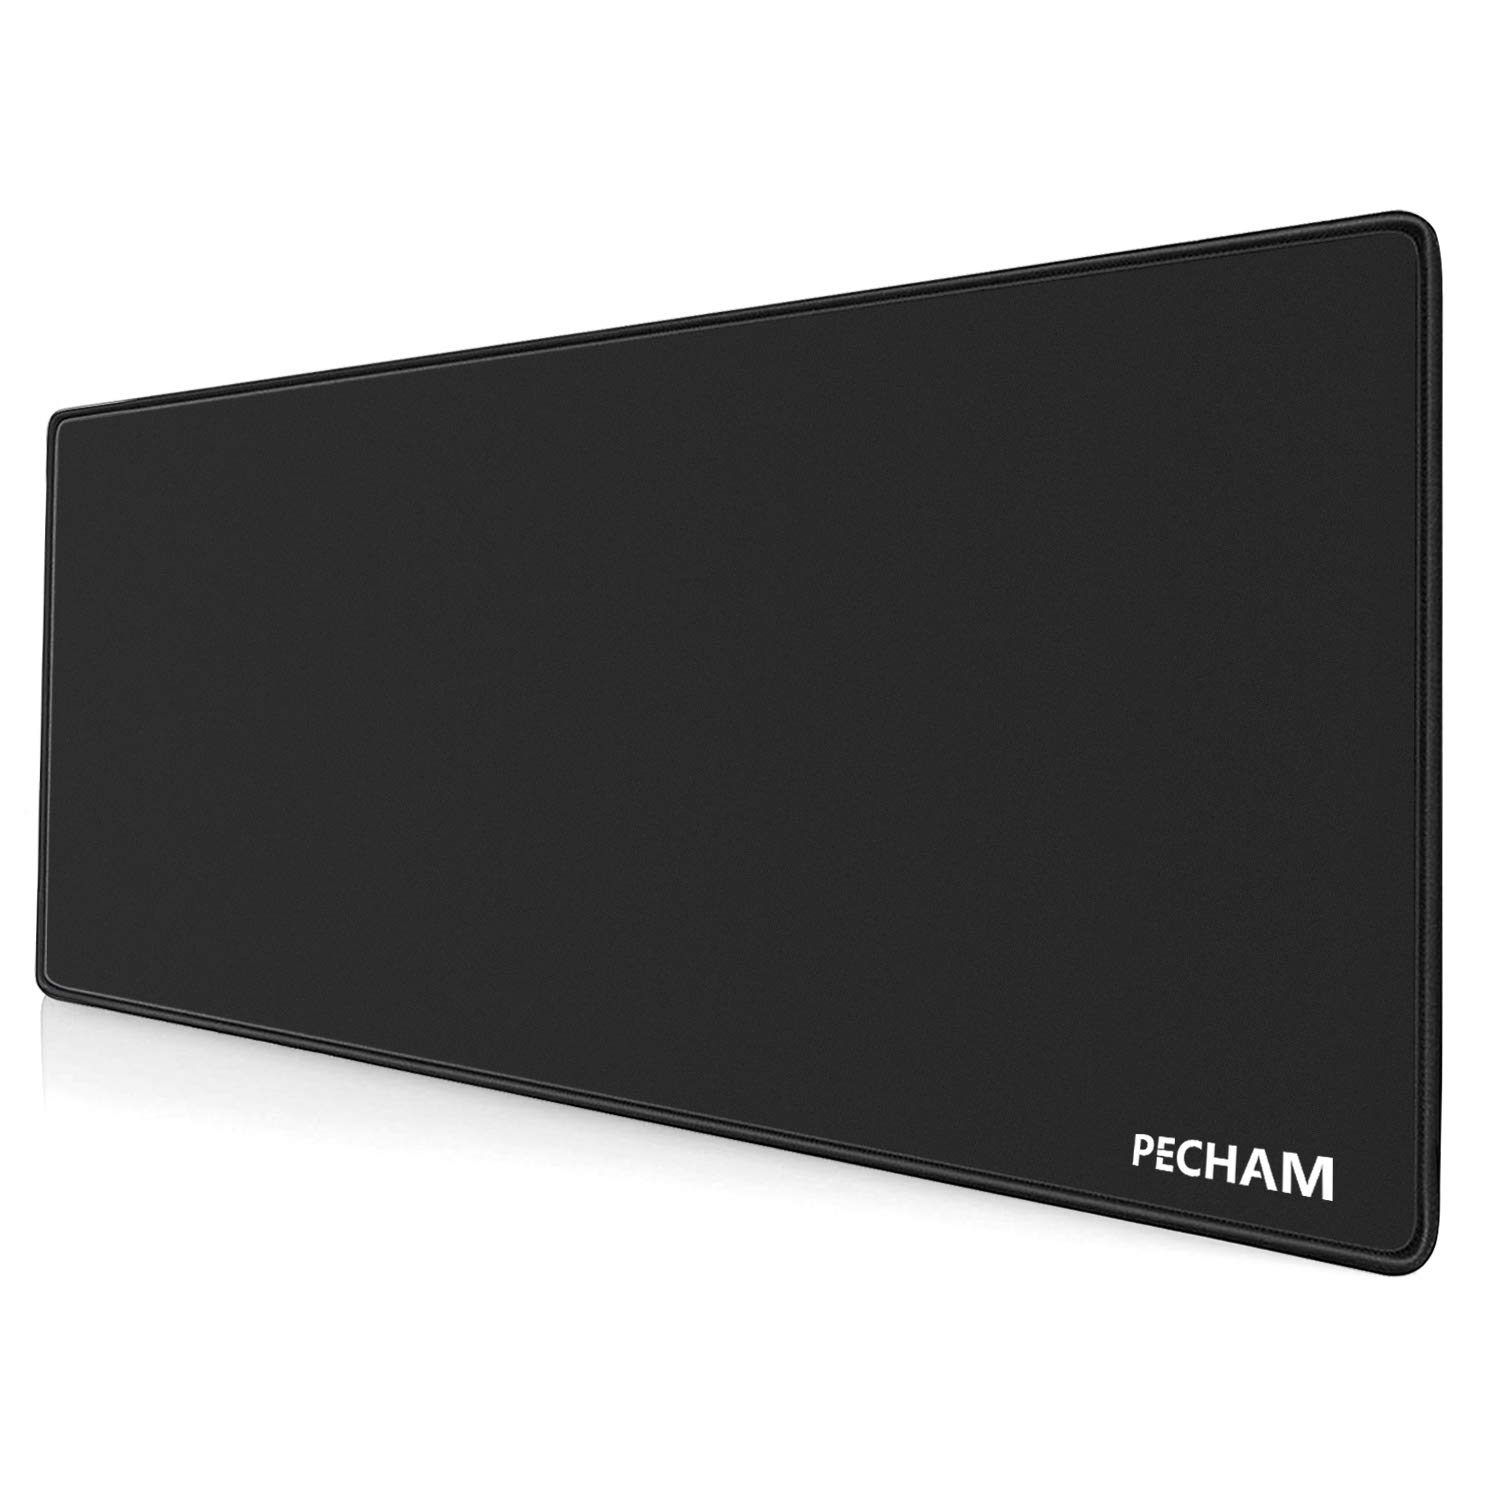 PECHAM 3mm Extended Gaming Mouse Pad.